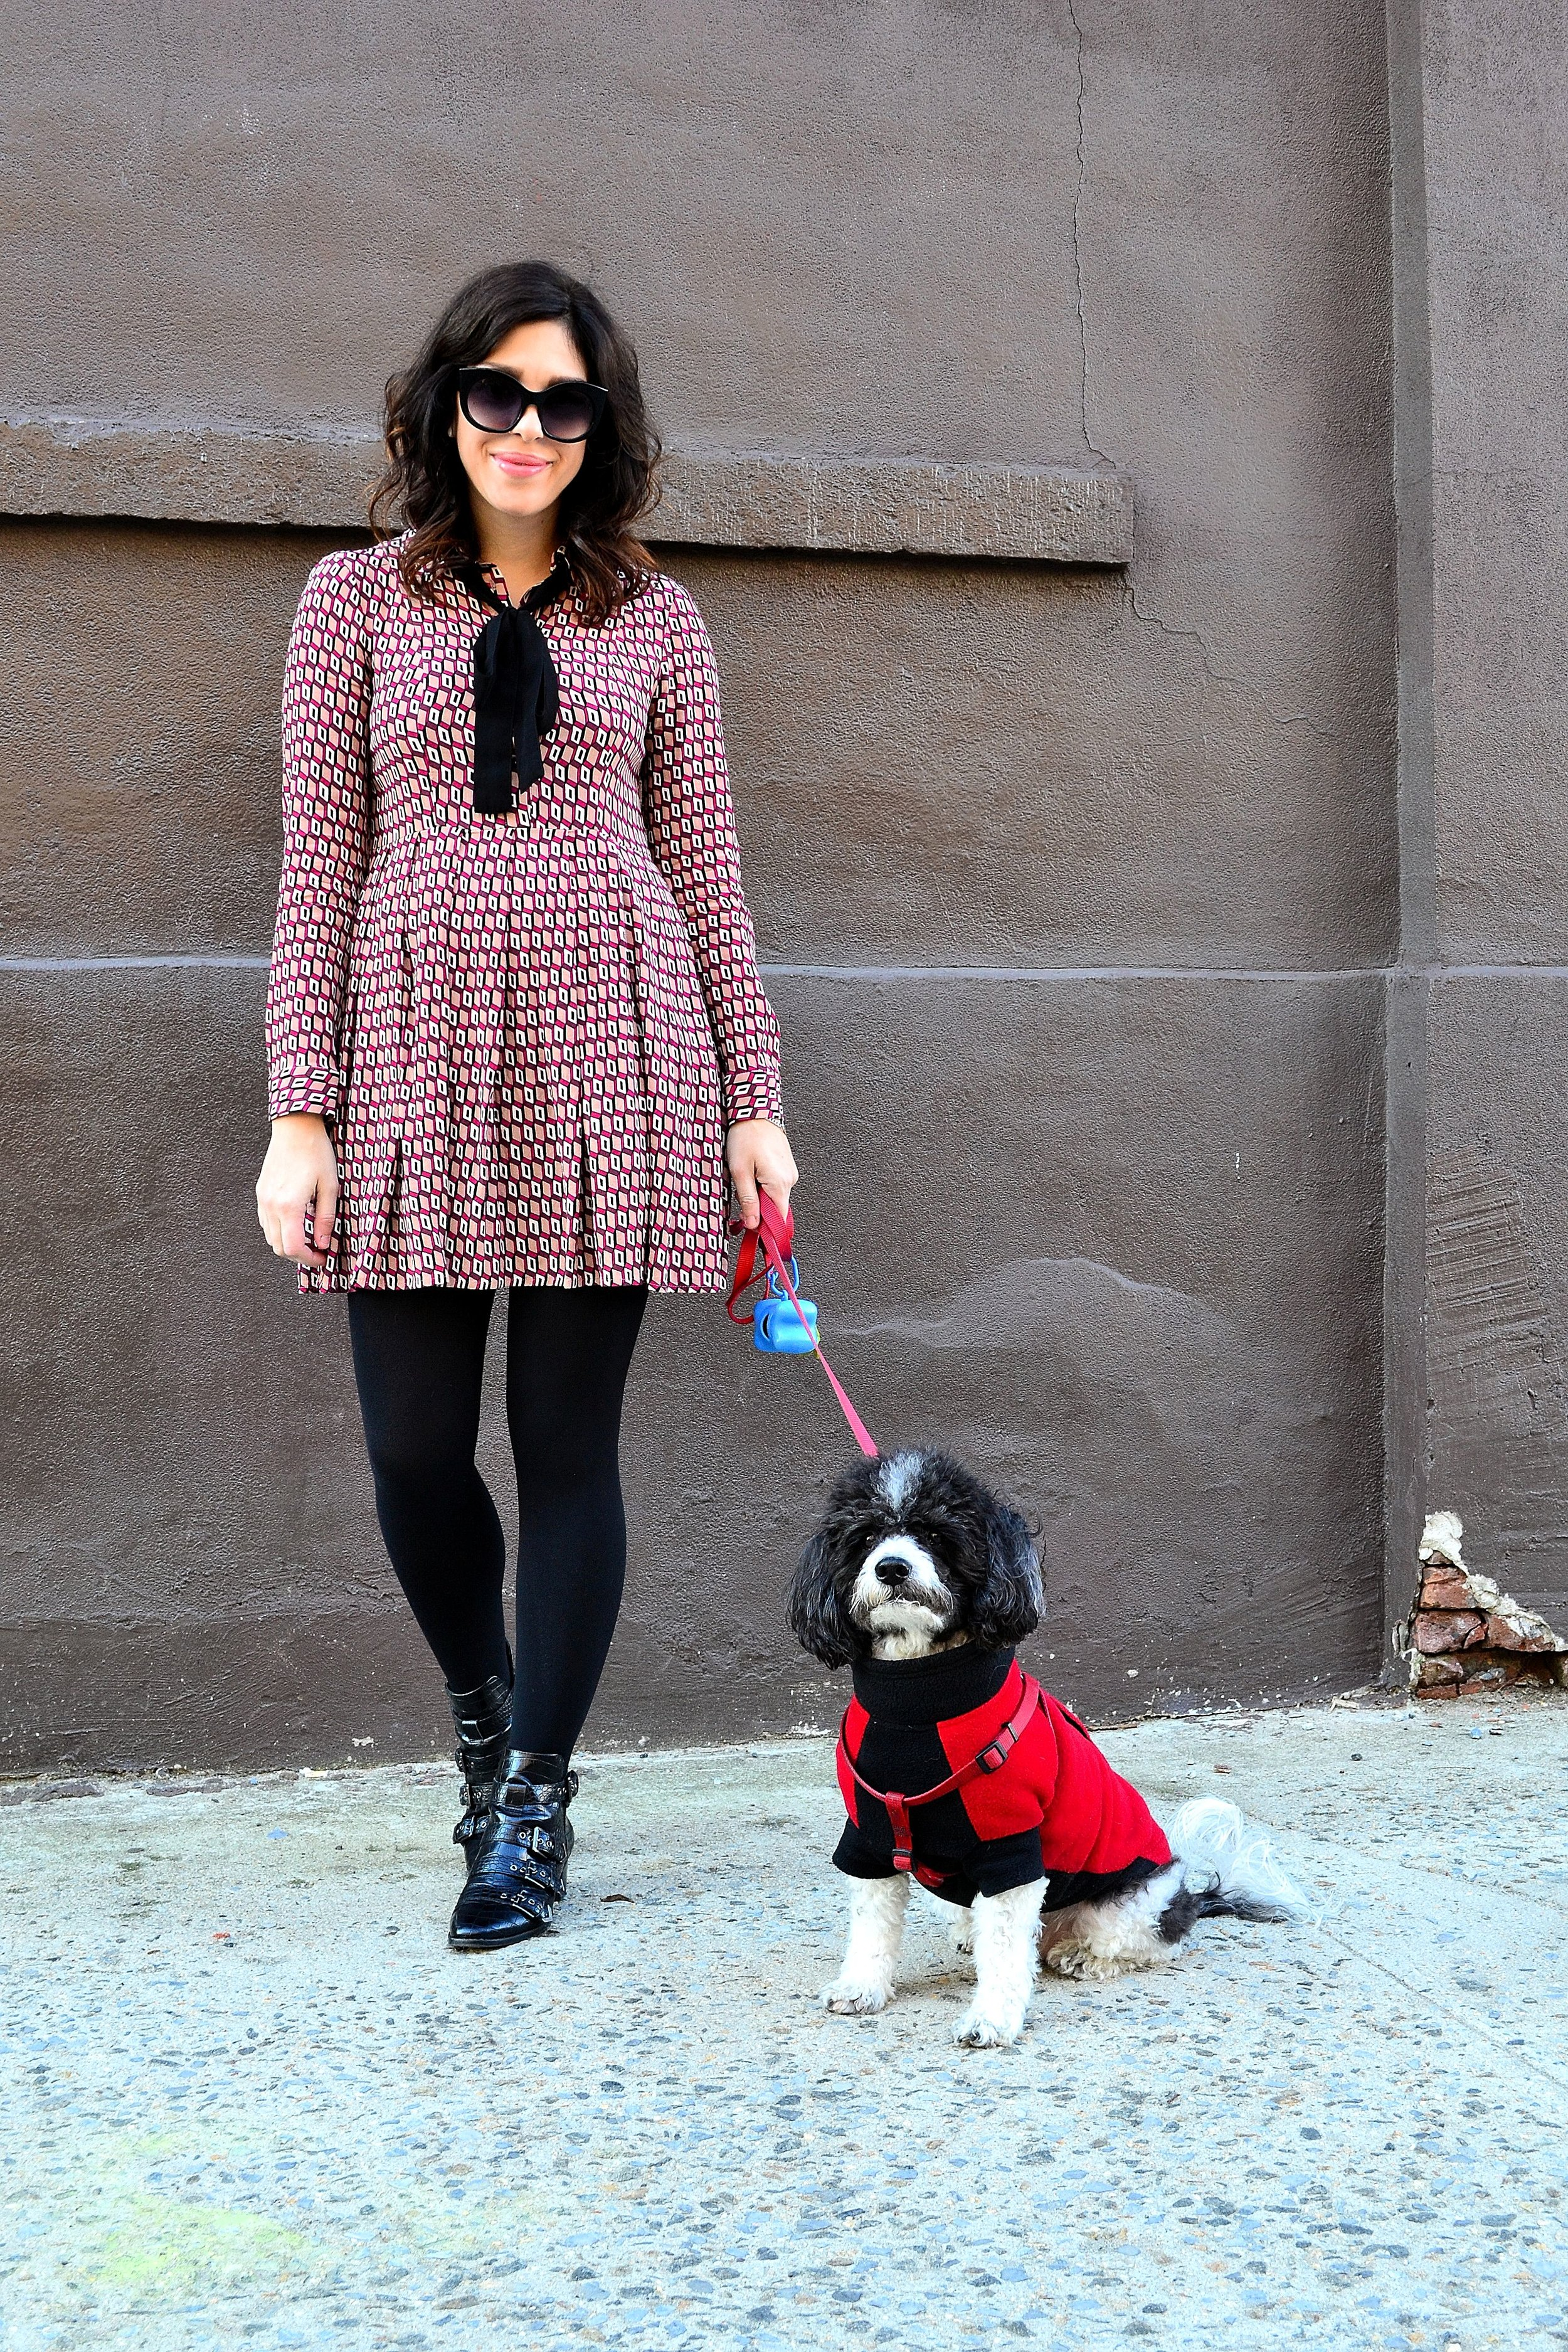 dress: Zara/  fleece lined tights: LOFT / booties: Design Lab from Lord & Taylor/ sunglasses: Urban Outfitters